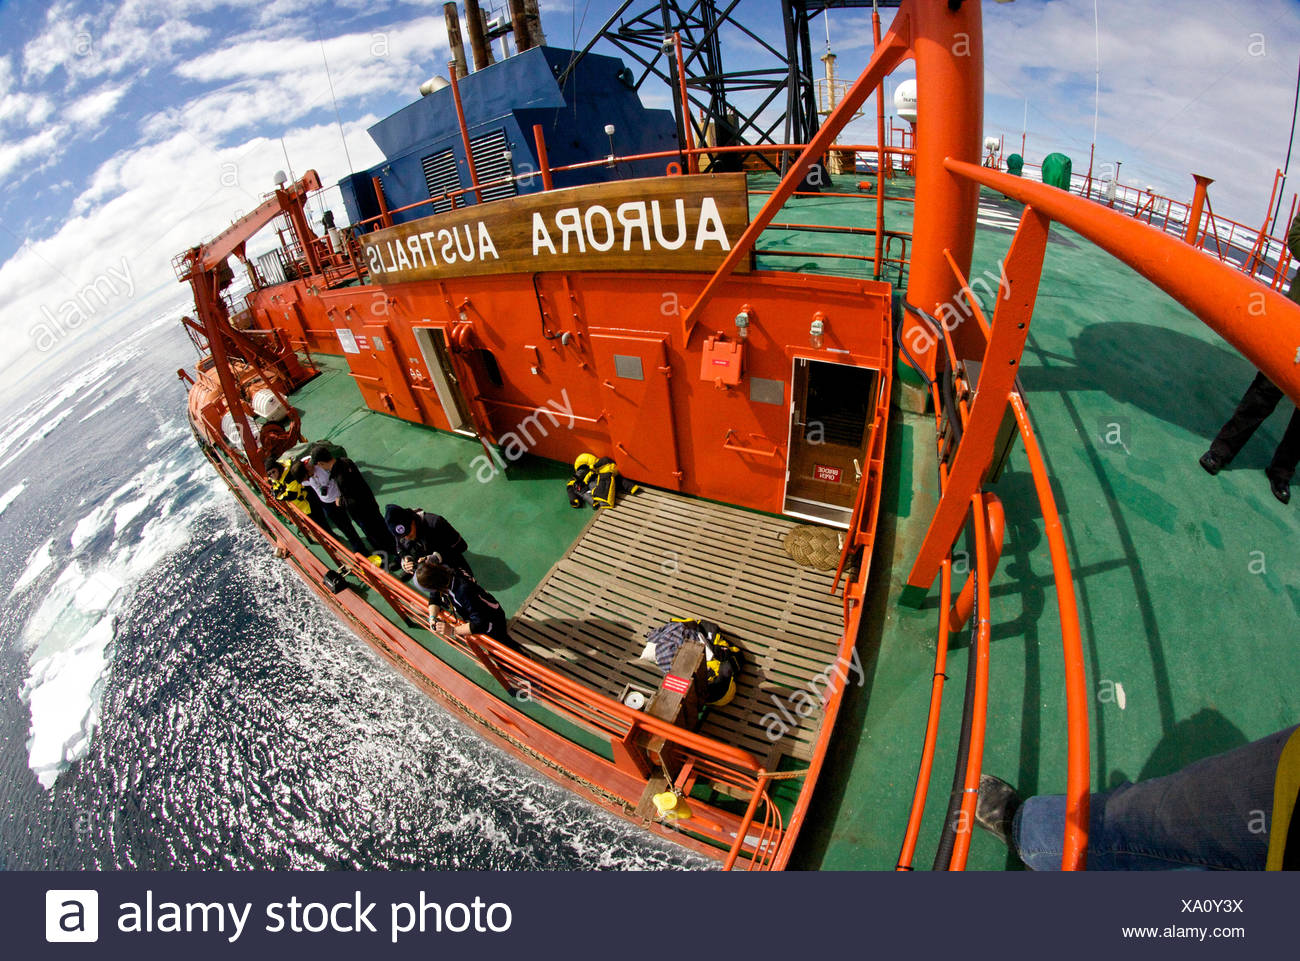 High angle view of the deck of the icebreaker 'Aurora Australis', Antarctica. All non-editorial uses must be cleared individually. - Stock Image